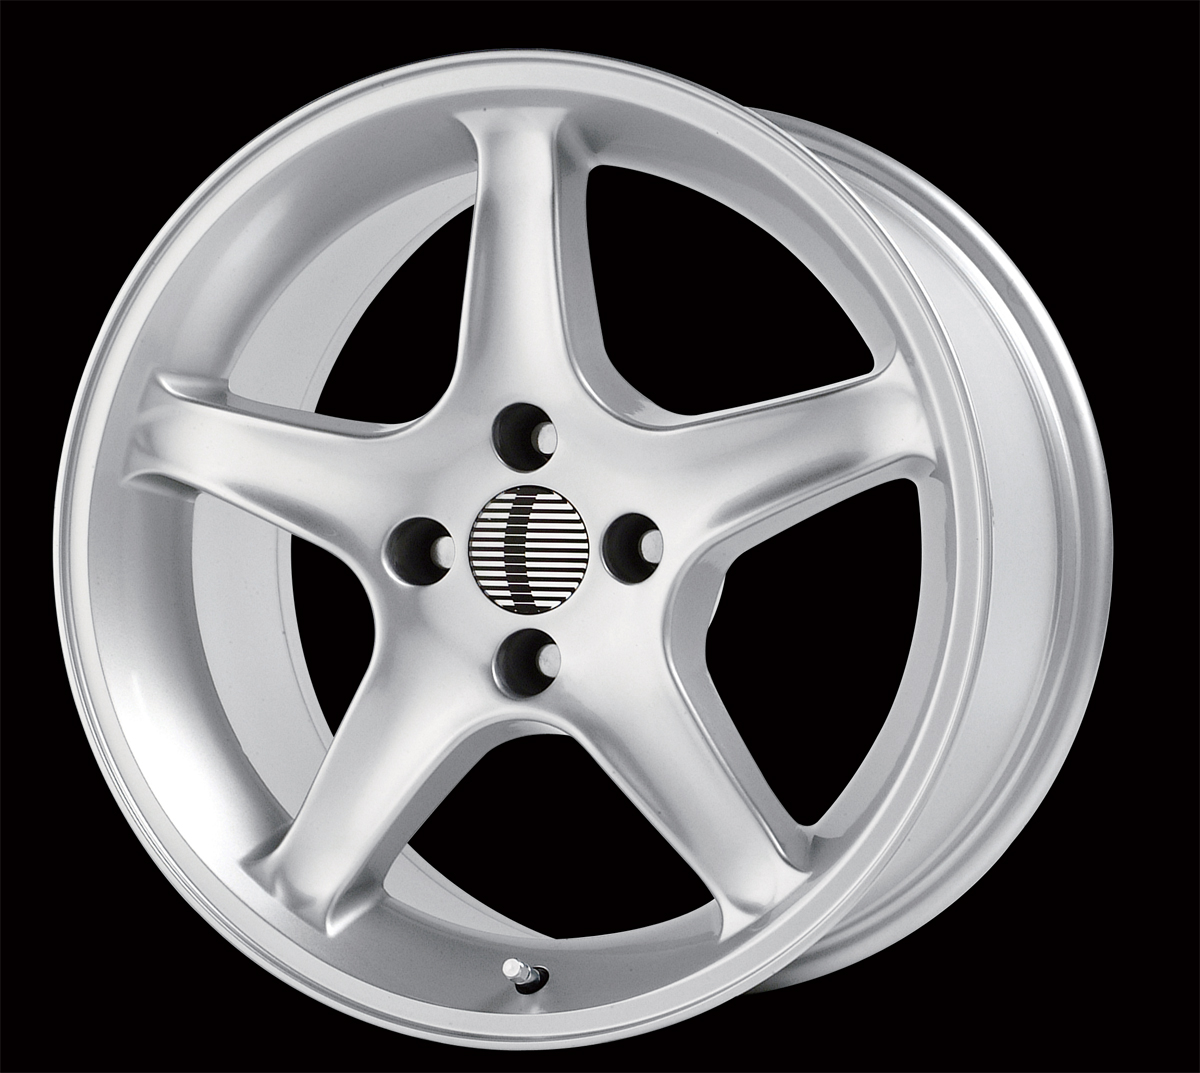 "COBRA R - SILVER - 4 Lug 79-93 (sizes available 16"", 17"", 18"")"